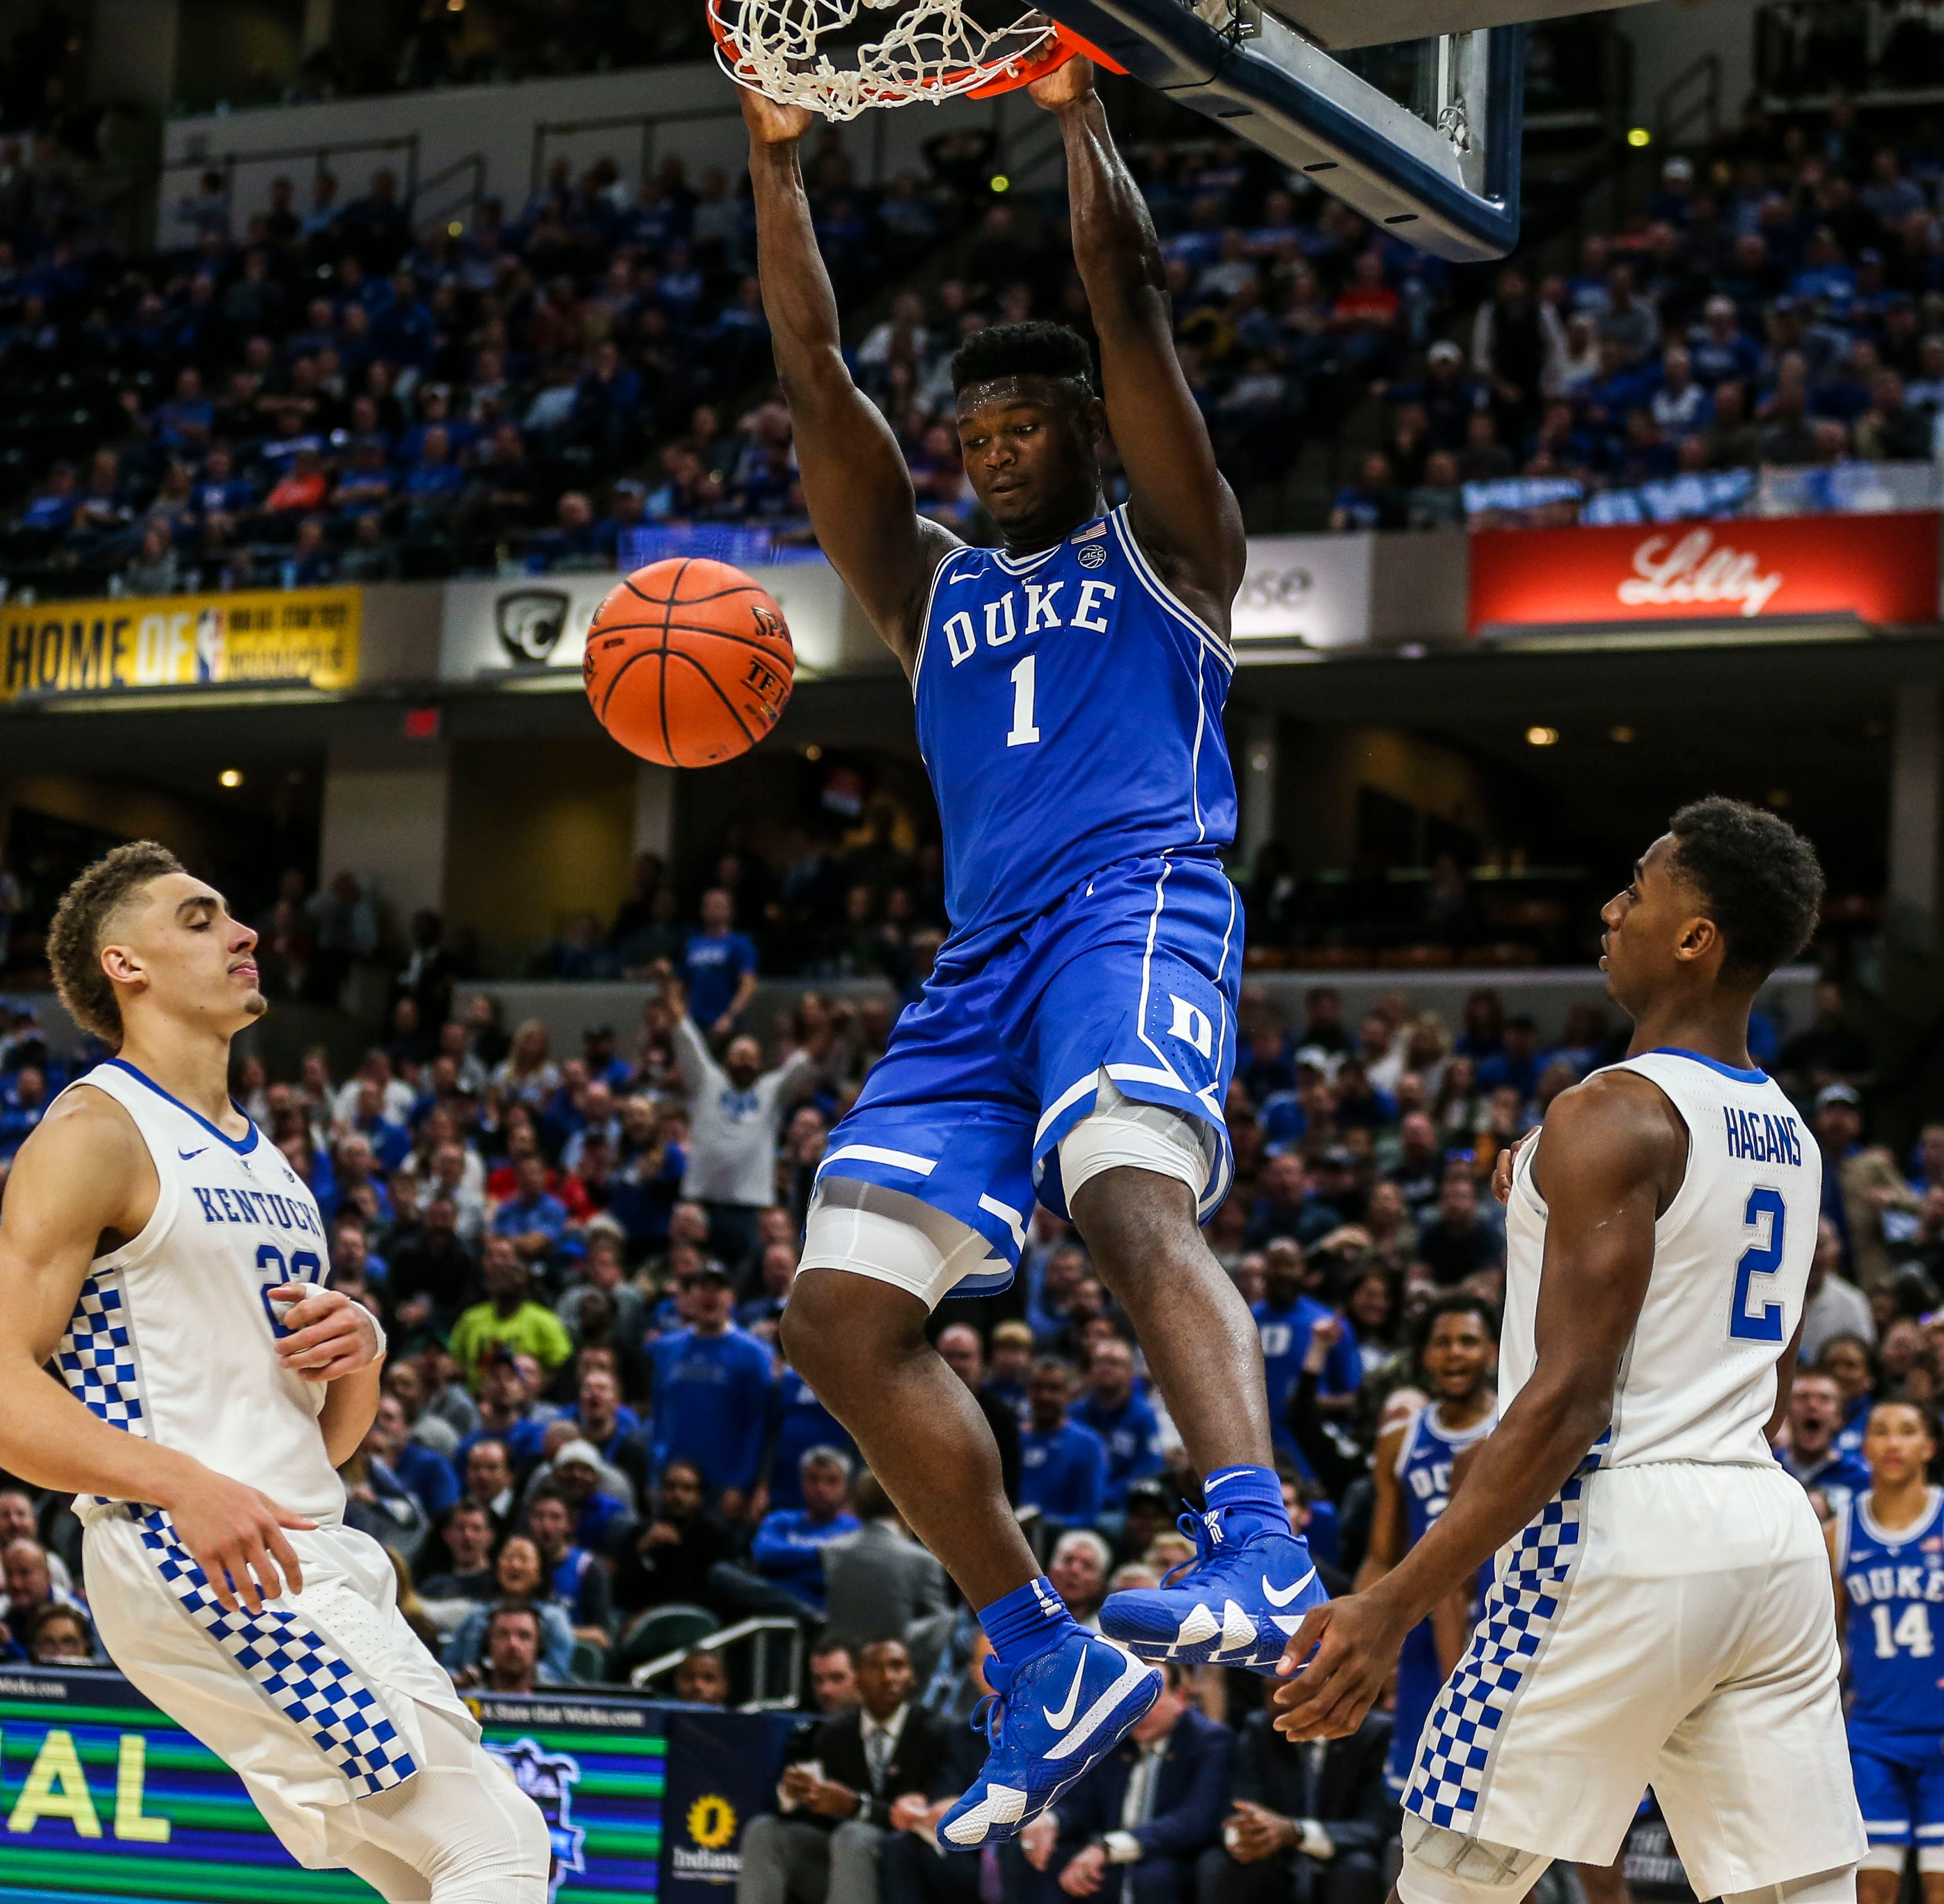 Duke's talent exposes Kentucky's veterans in Champions Classic blowout